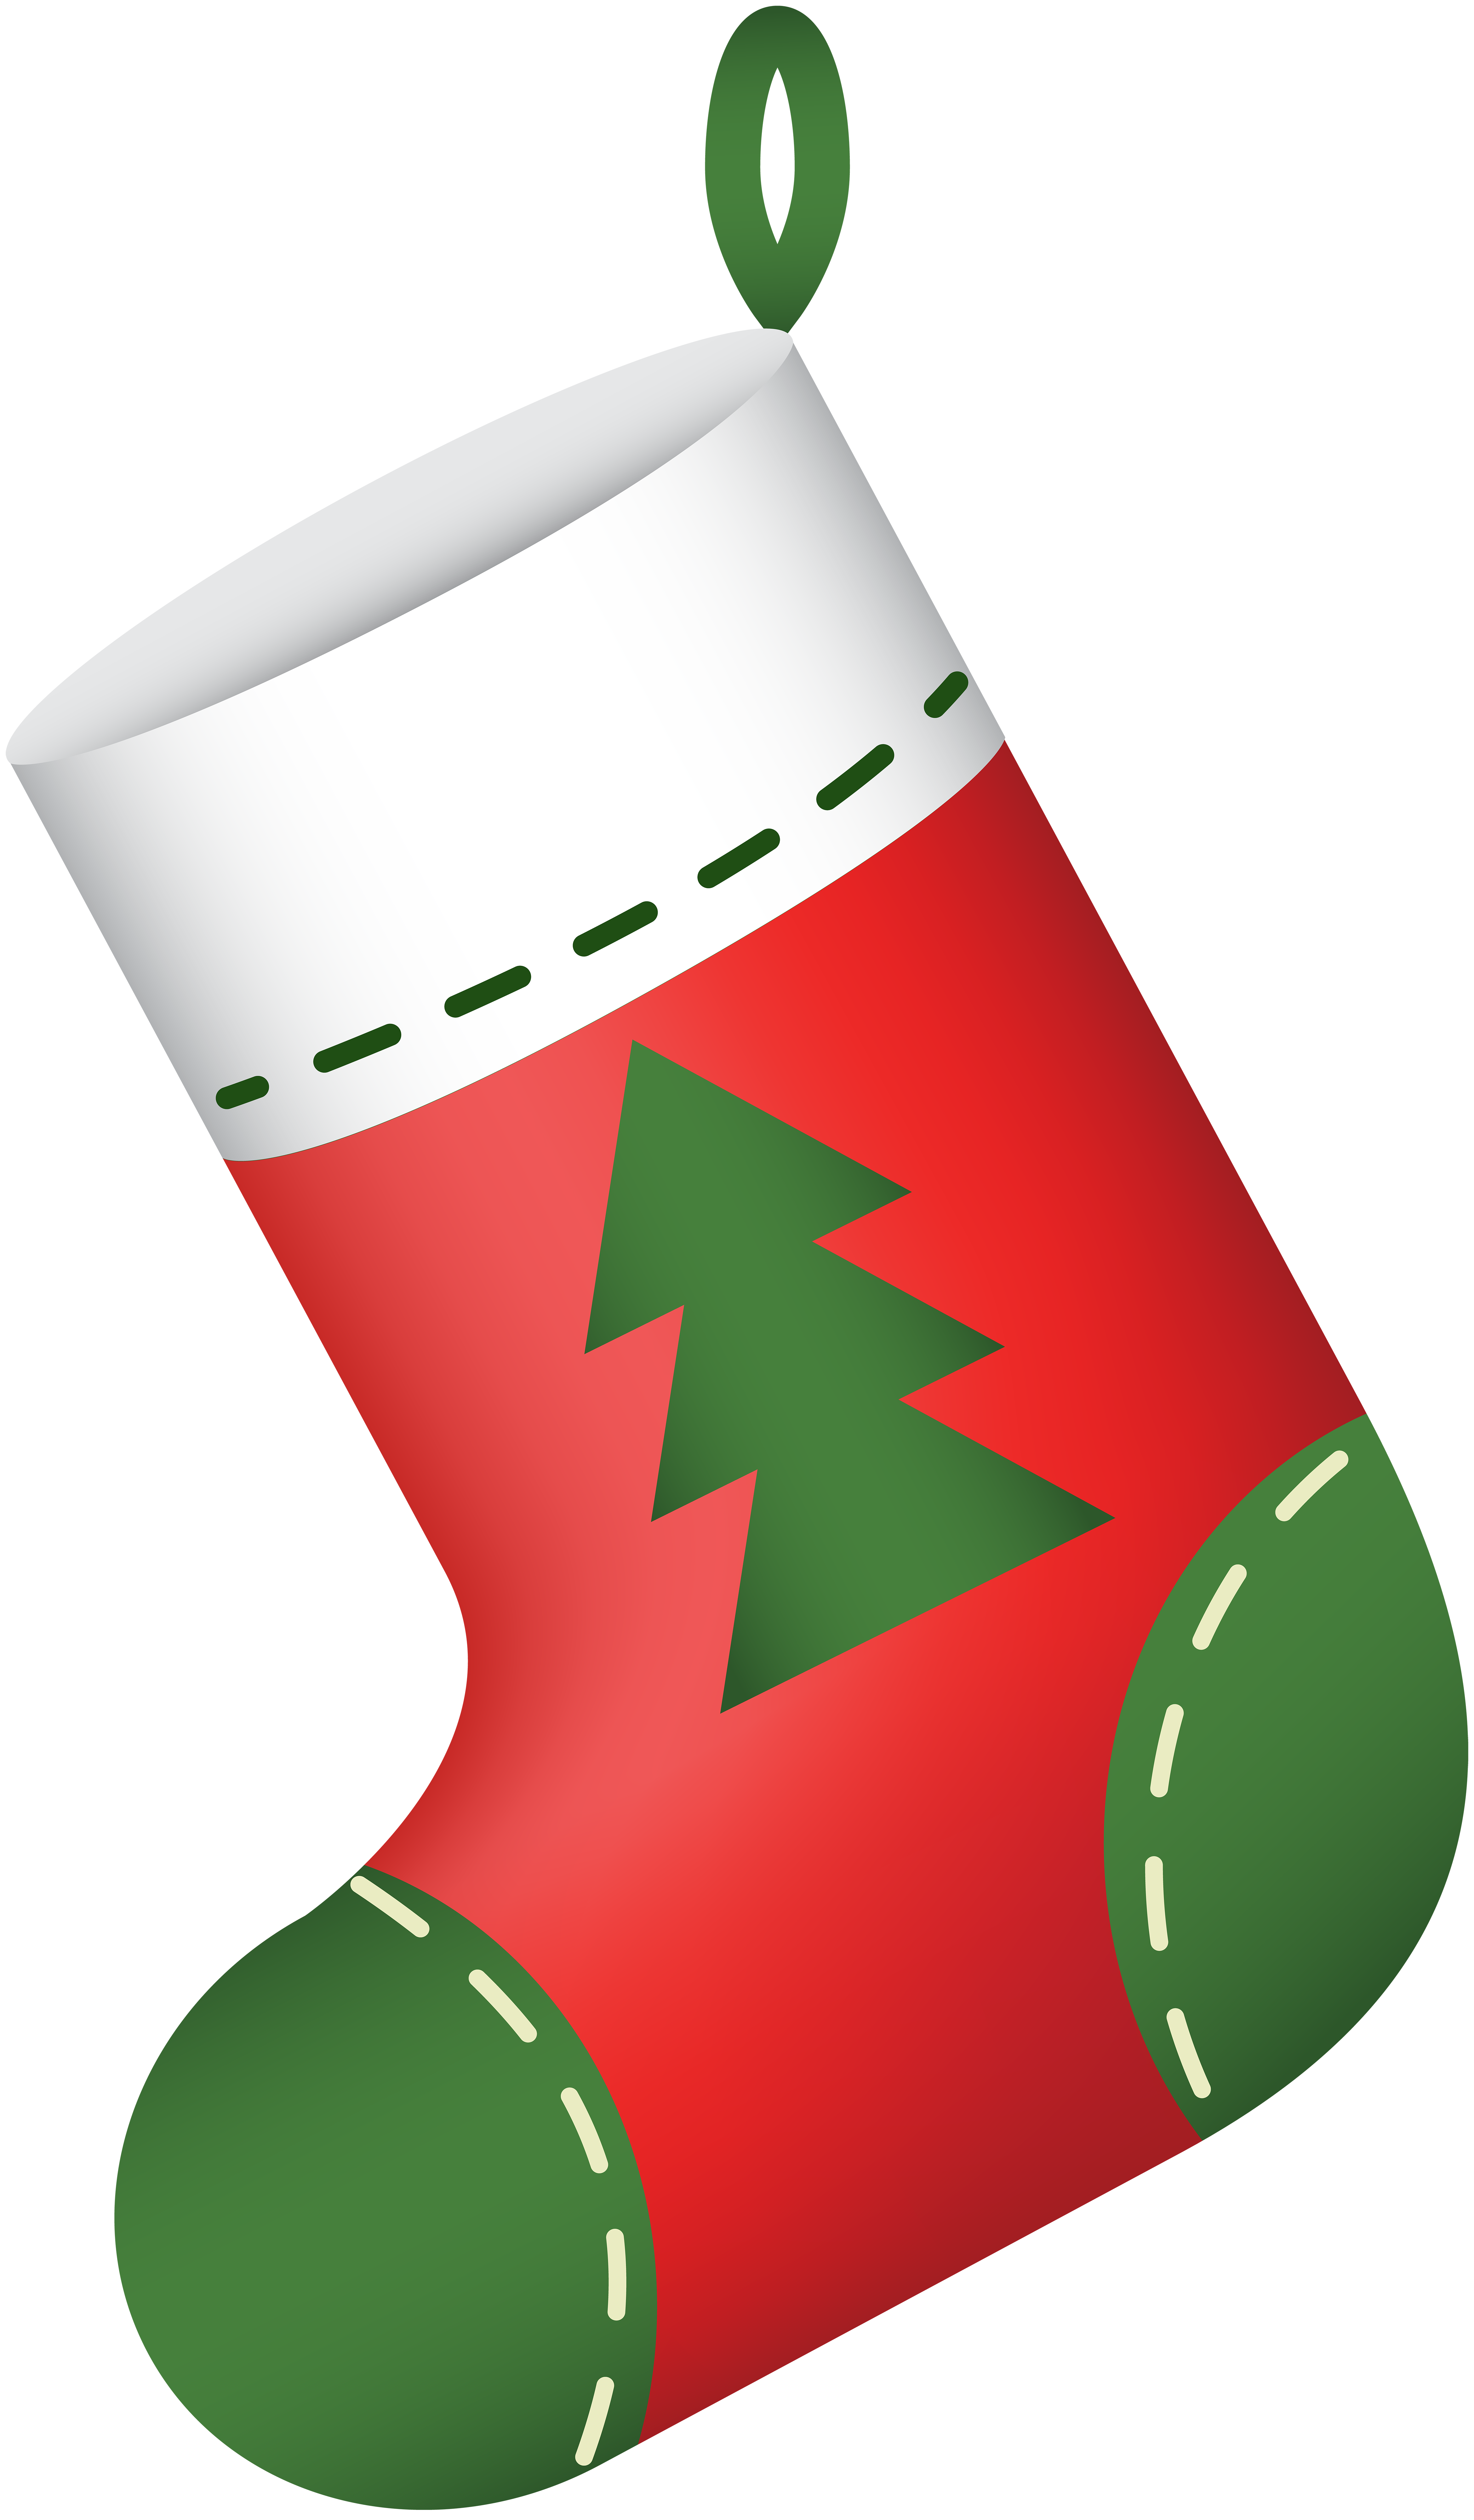 Christmas stocking clipart images picture freeuse stock Christmas Stocking Red PNG Clip Art | Gallery Yopriceville - High ... picture freeuse stock